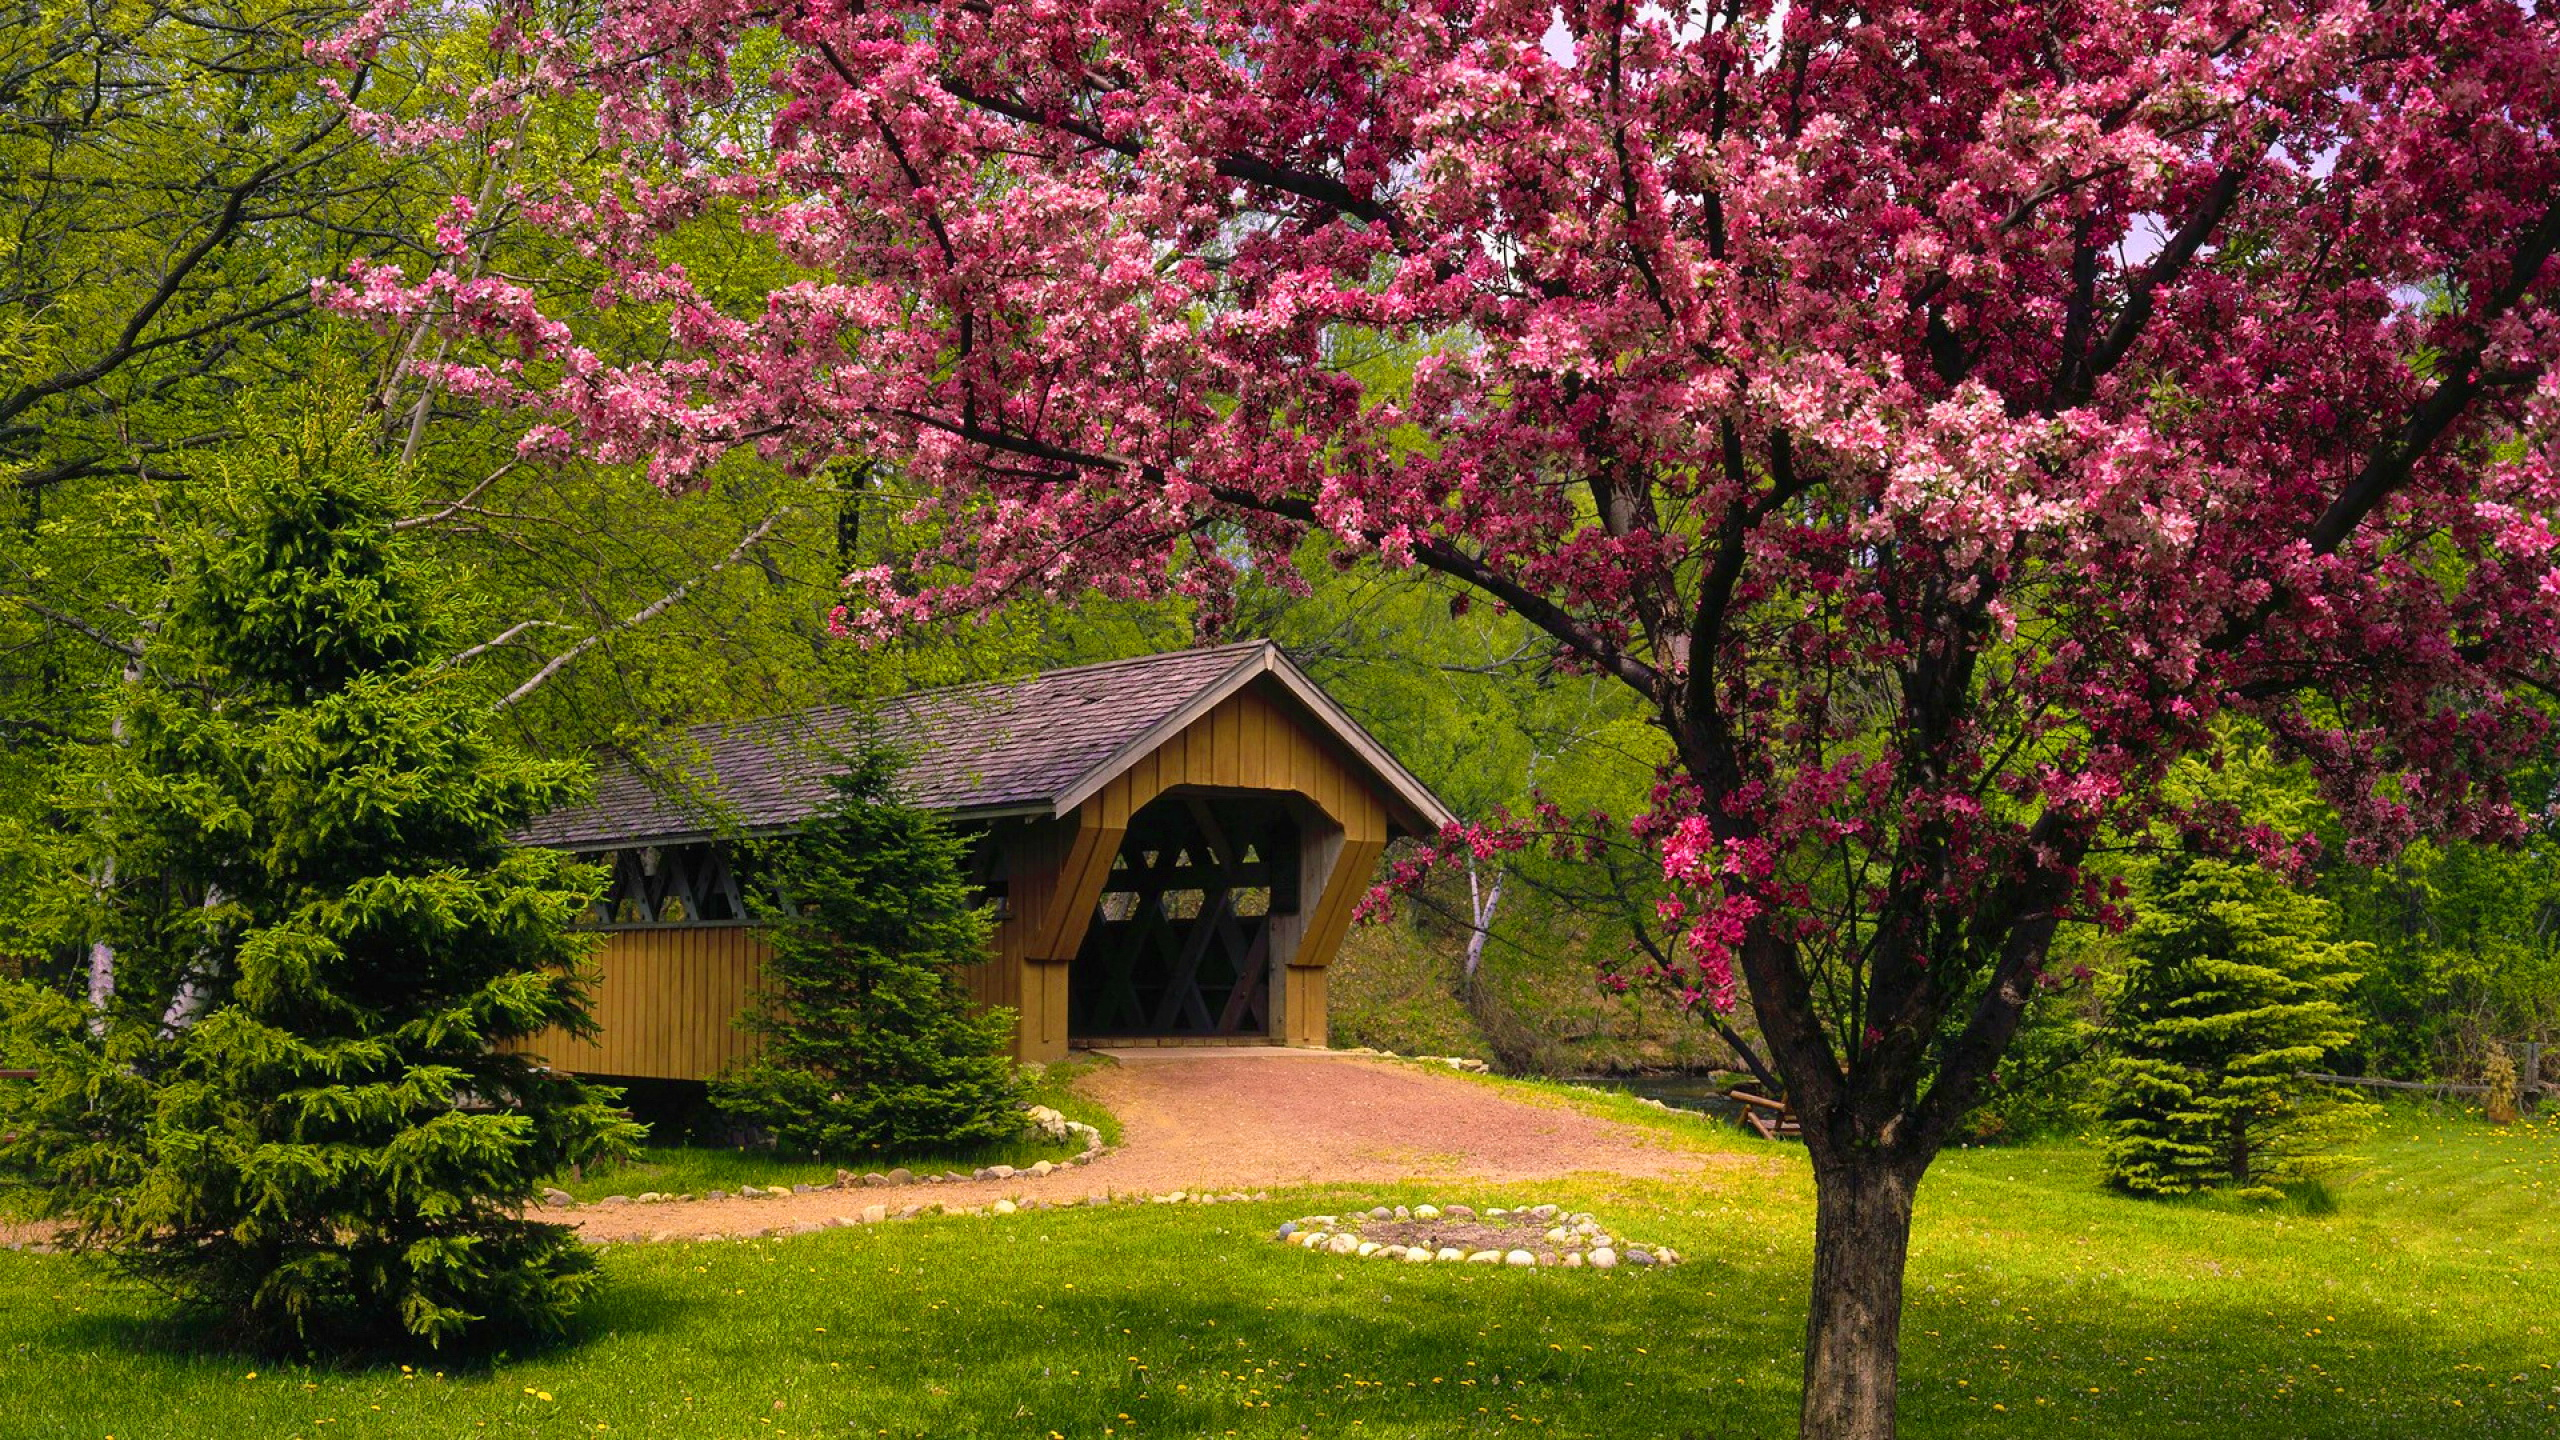 Beautiful Spring images download 2560x1440